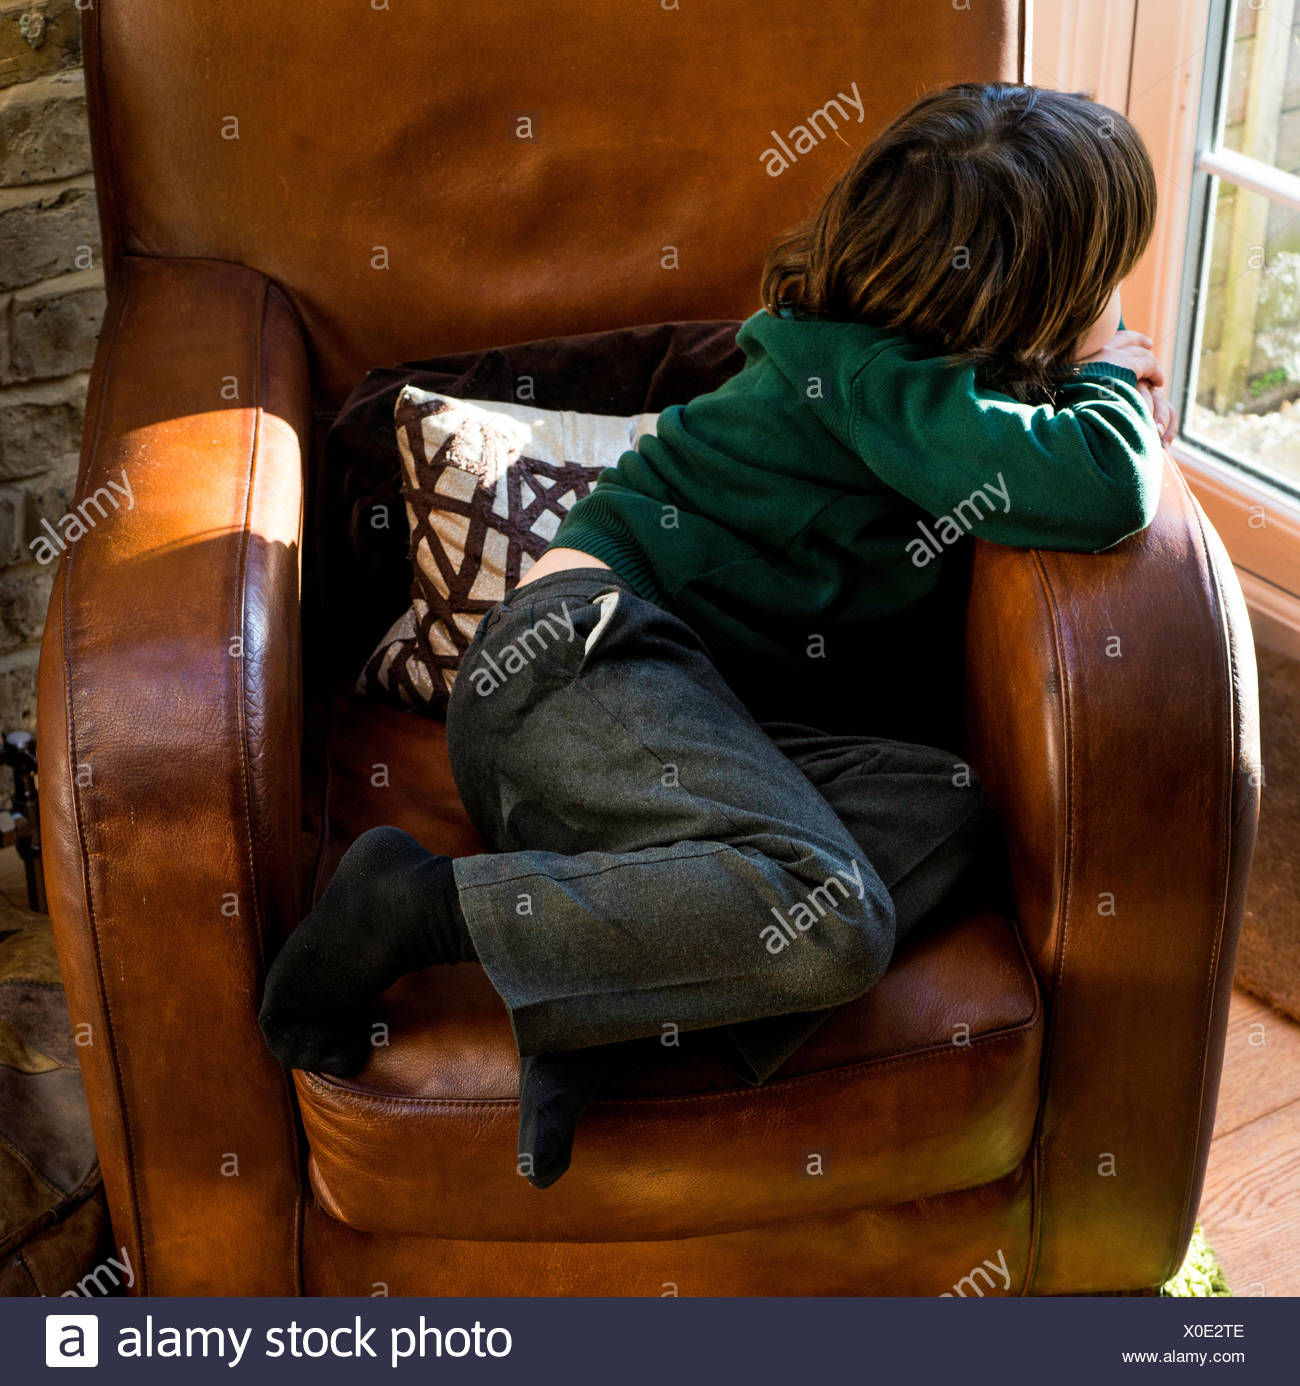 Boy relaxing on arm chair after school - Stock Image